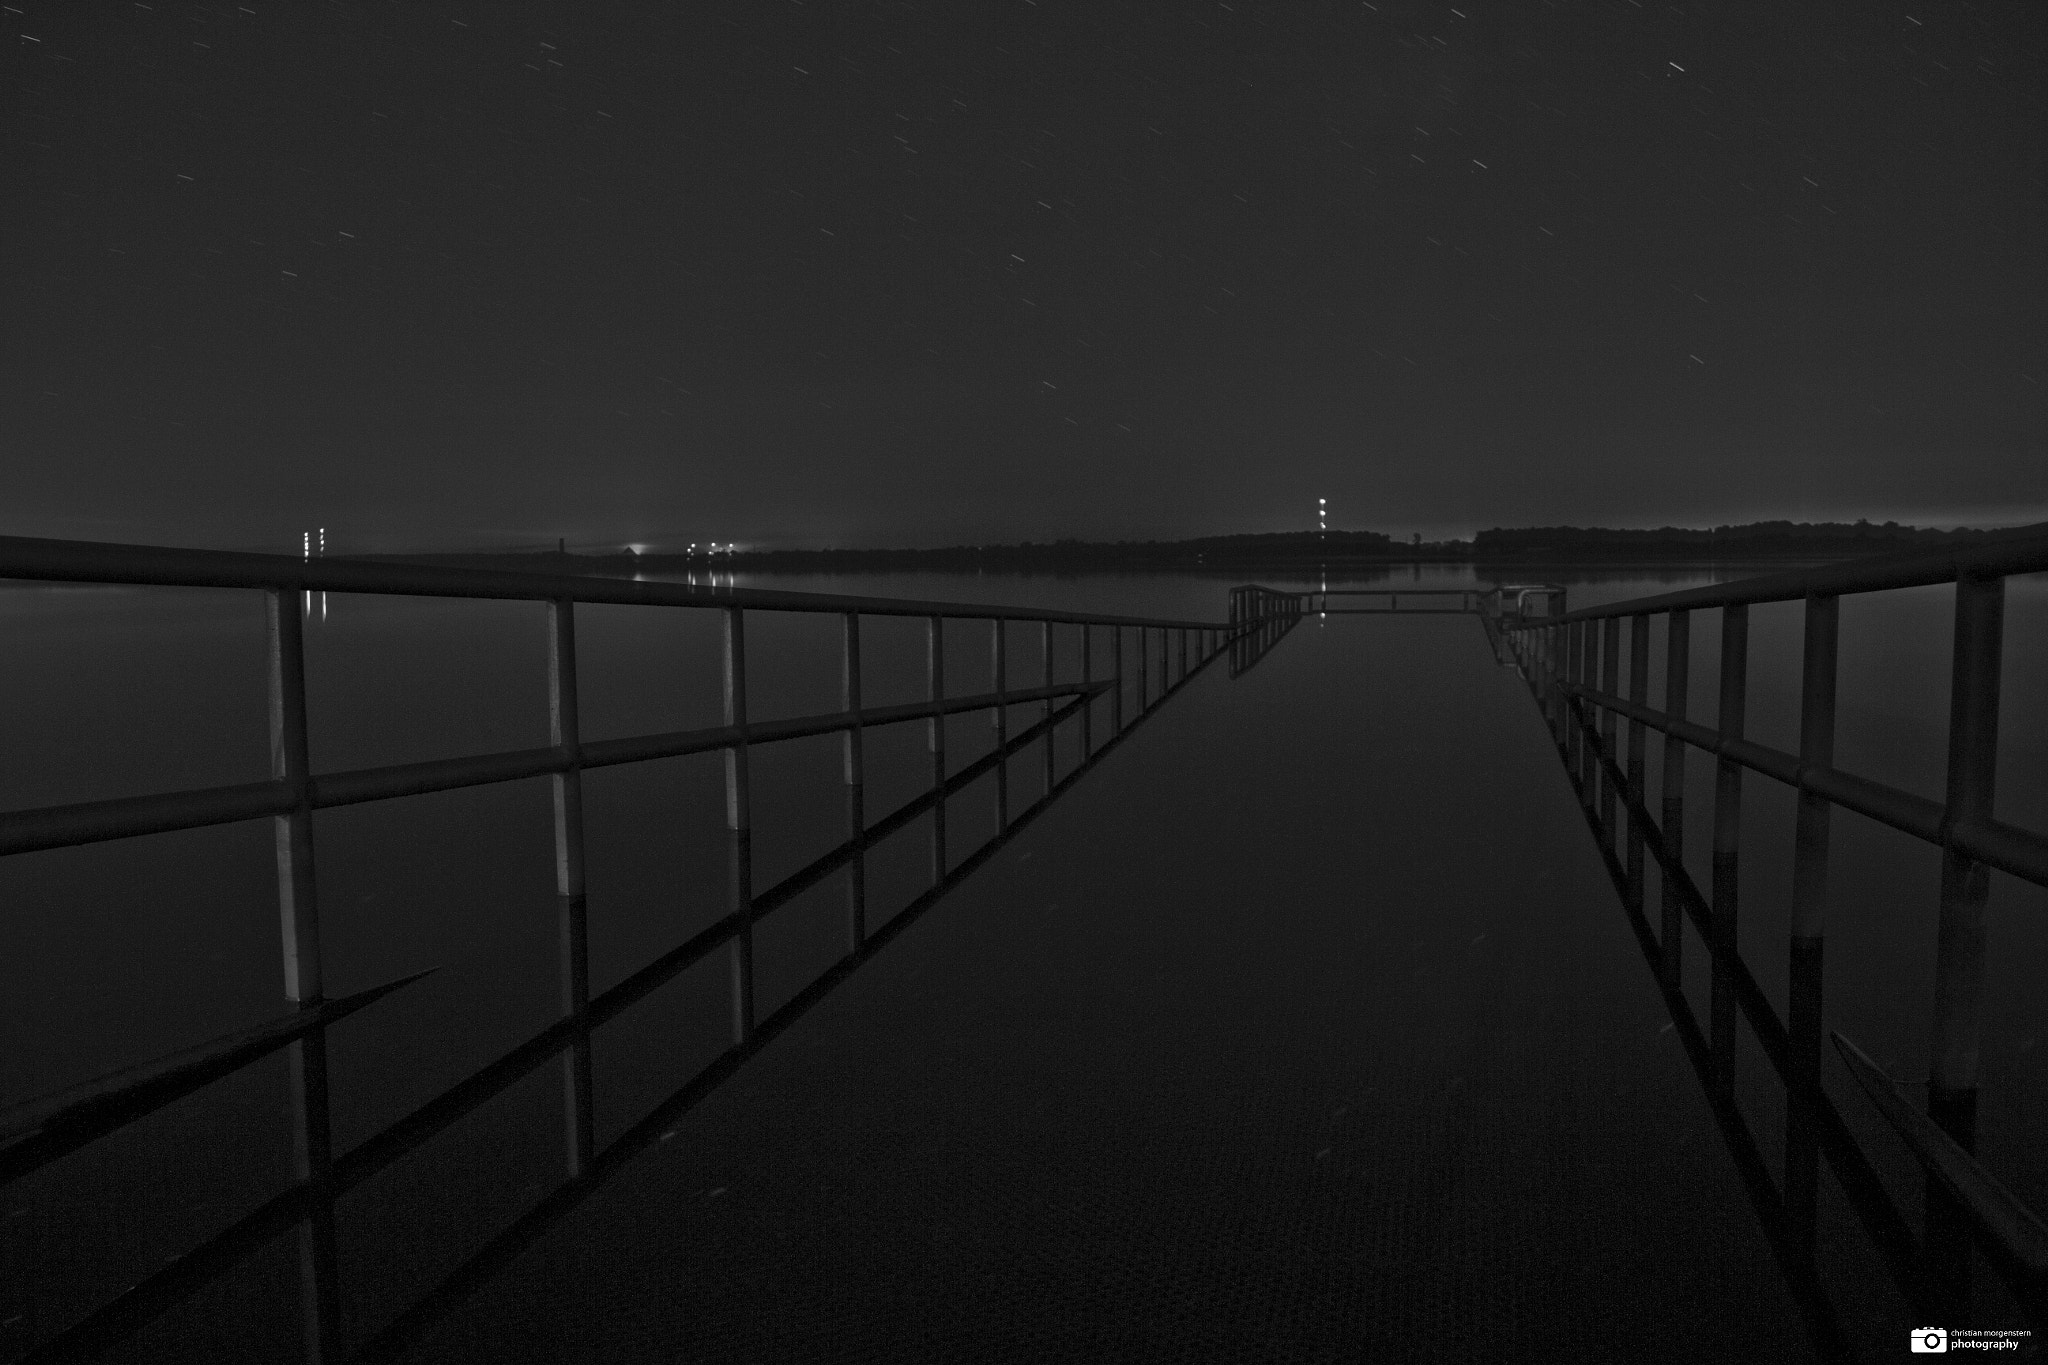 Photograph The Way to nowhere by Christian Morgenstern on 500px